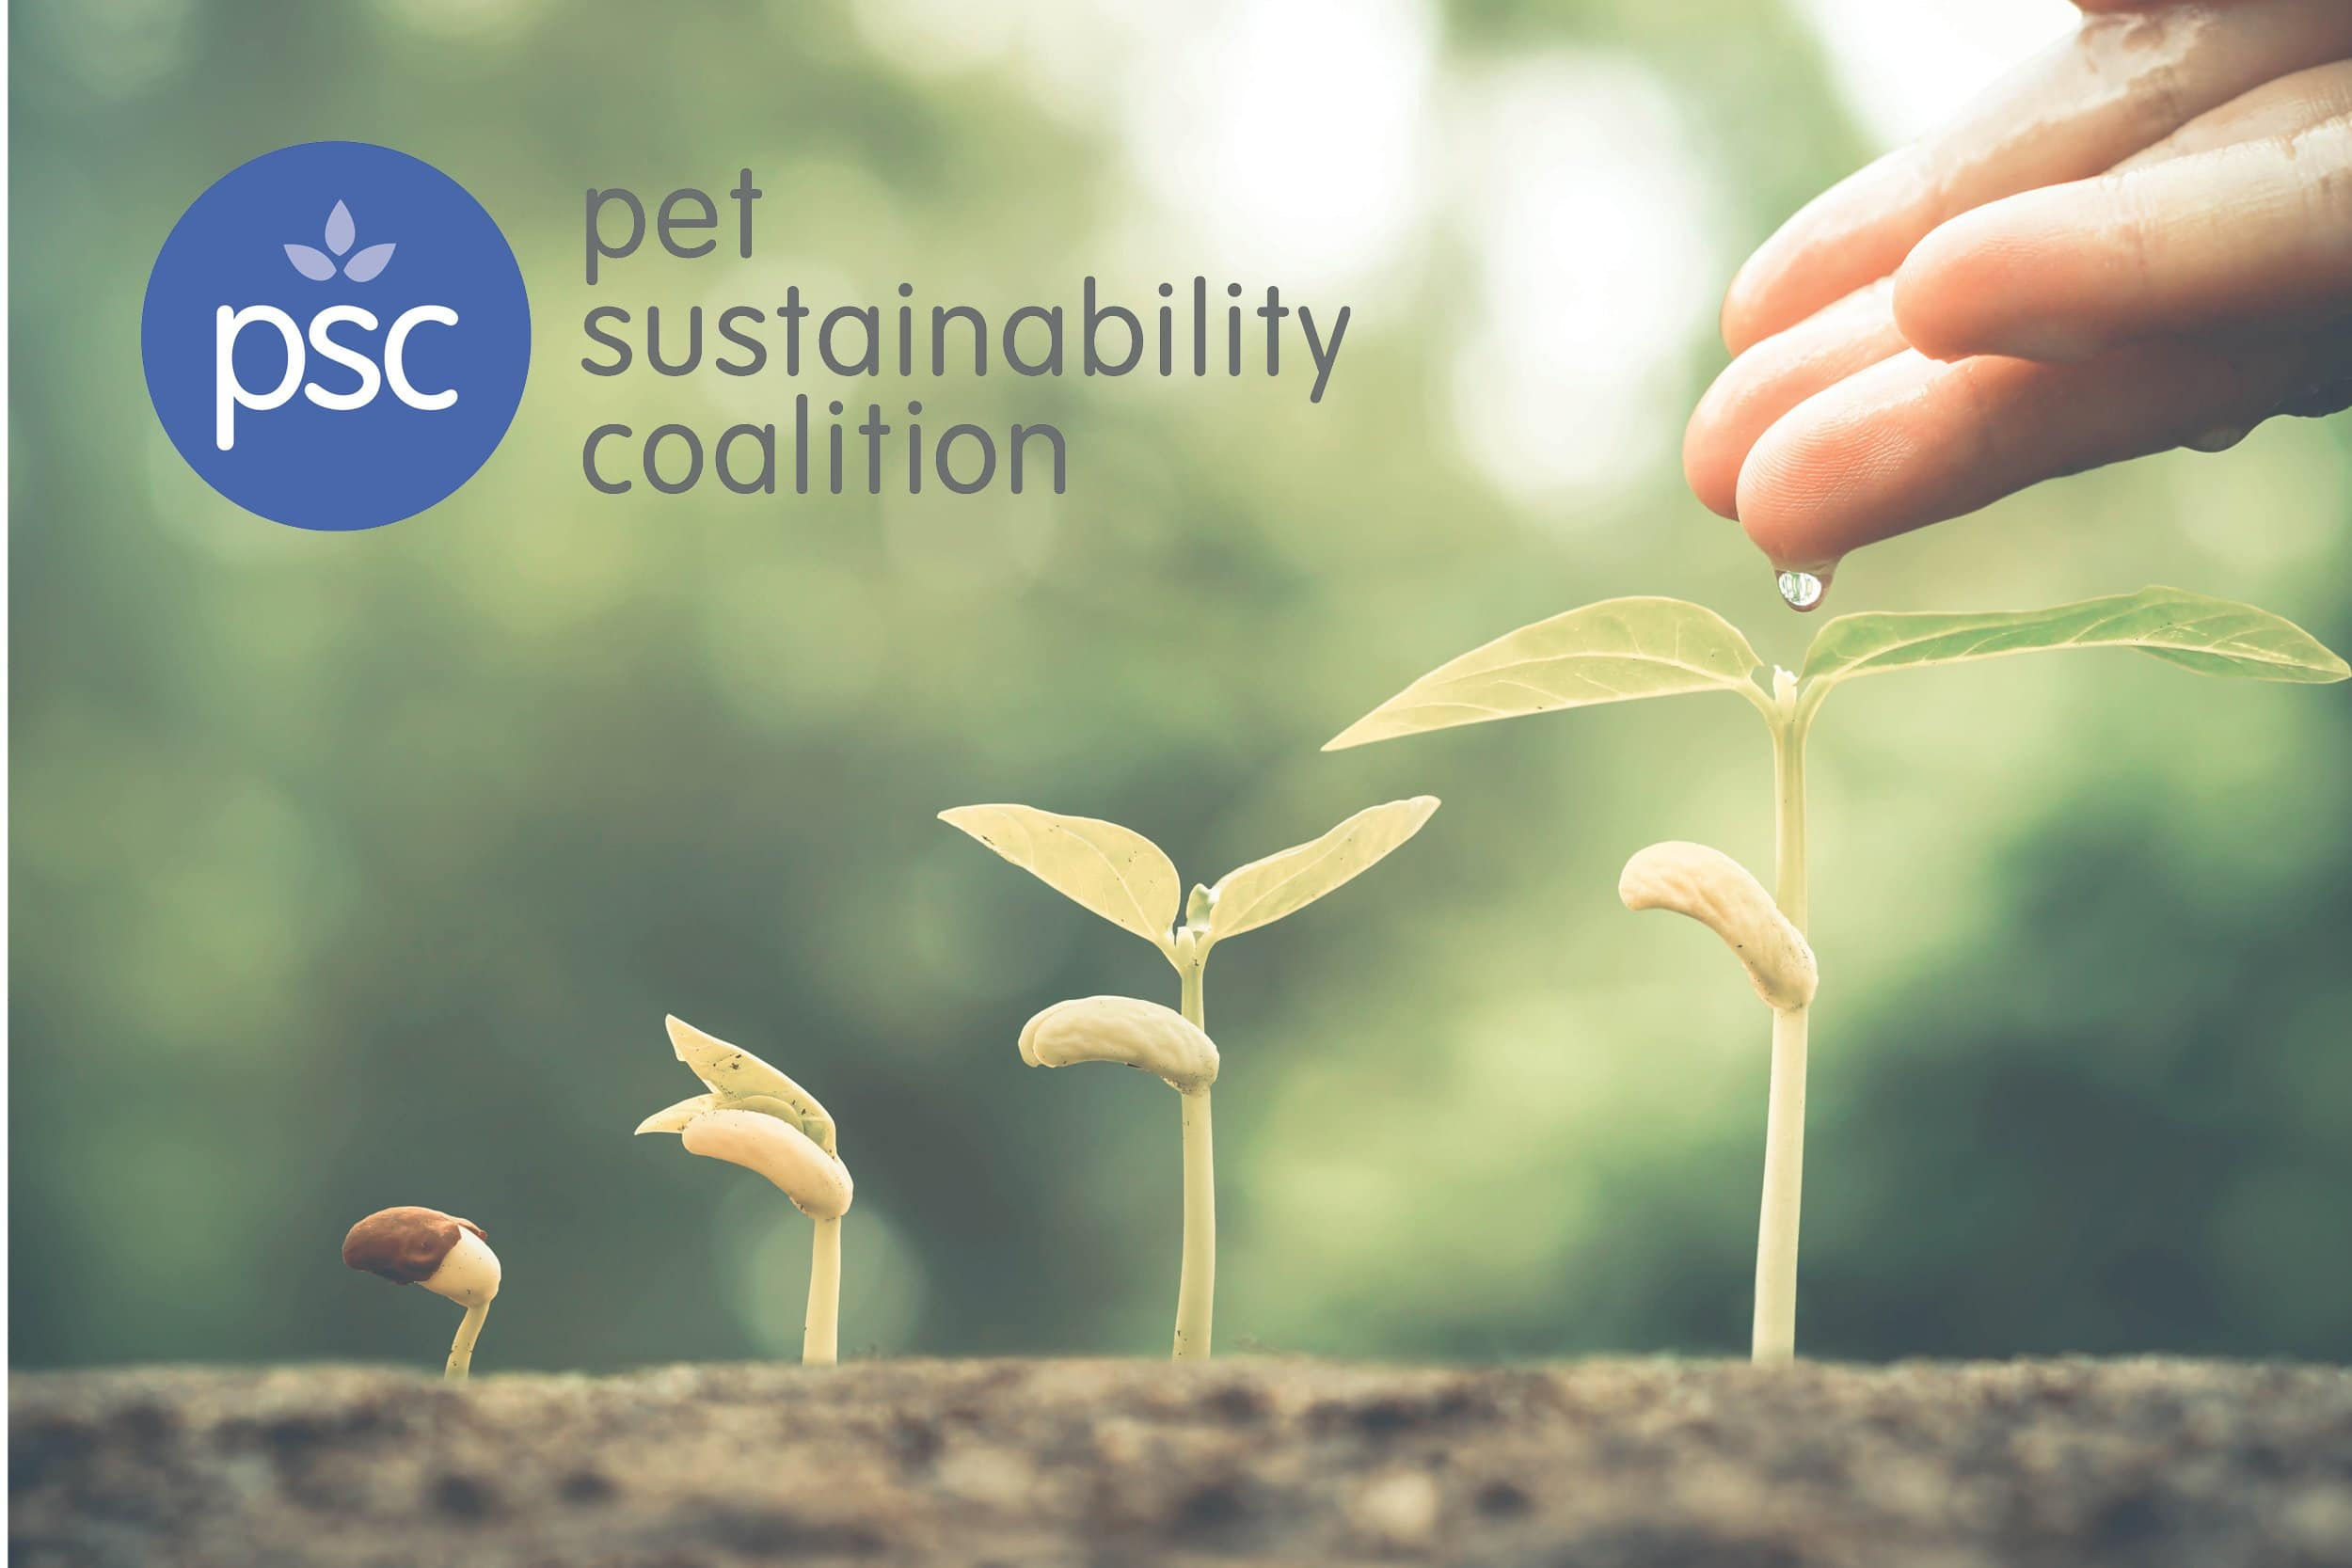 Pet Sustainability Coalition Announces Expansion with Two New Board Members and Staff